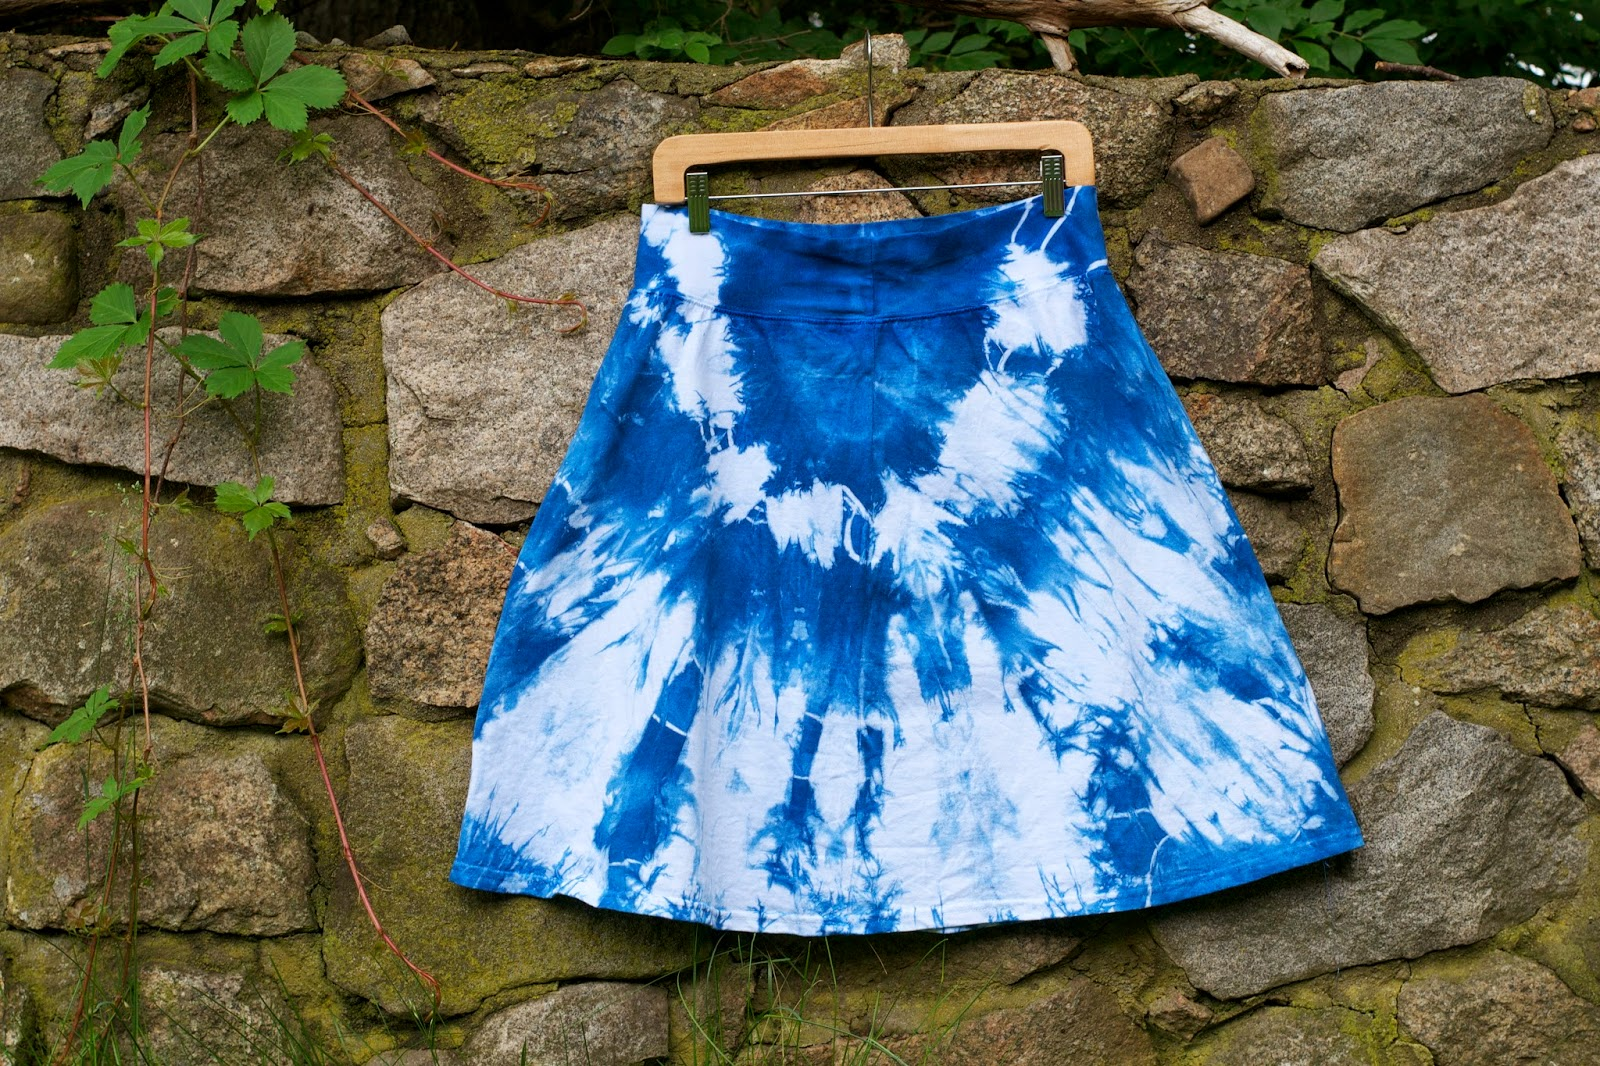 Hand dyed cotton skirt. Knee length, ndigo blue, shibori/tie dye style.